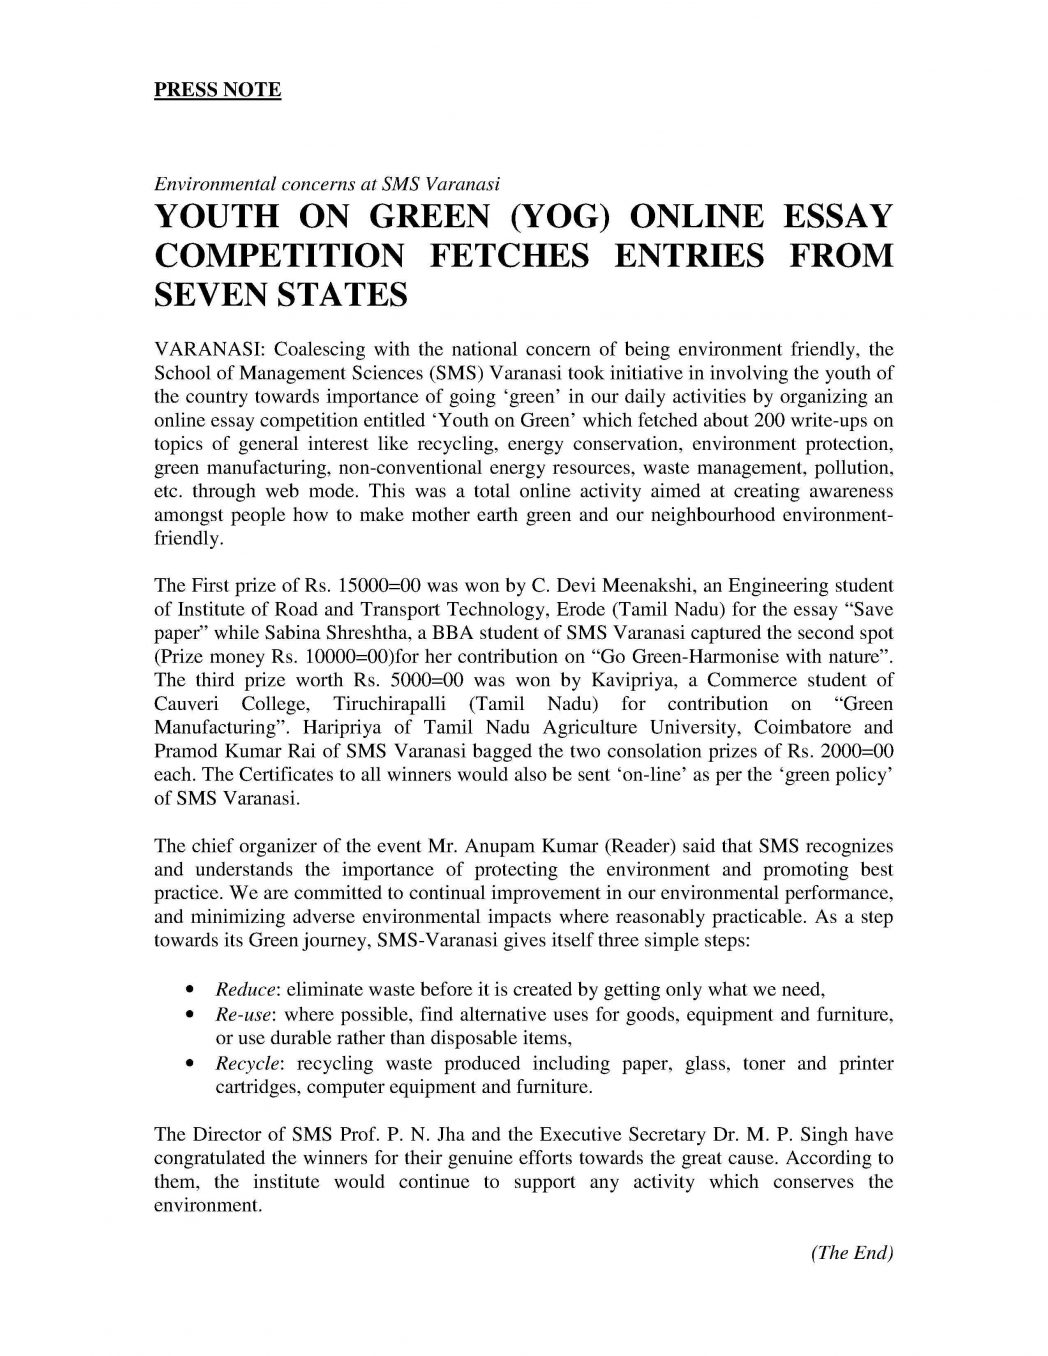 020 Best Essays For College Essay On Good Habits How Tot Application Online Yog Press Re About Yourself Examples Your Background Failure Prompt Off Hook 1048x1356 Example Amazing To Start An Bad With A Question Ways Definition Full